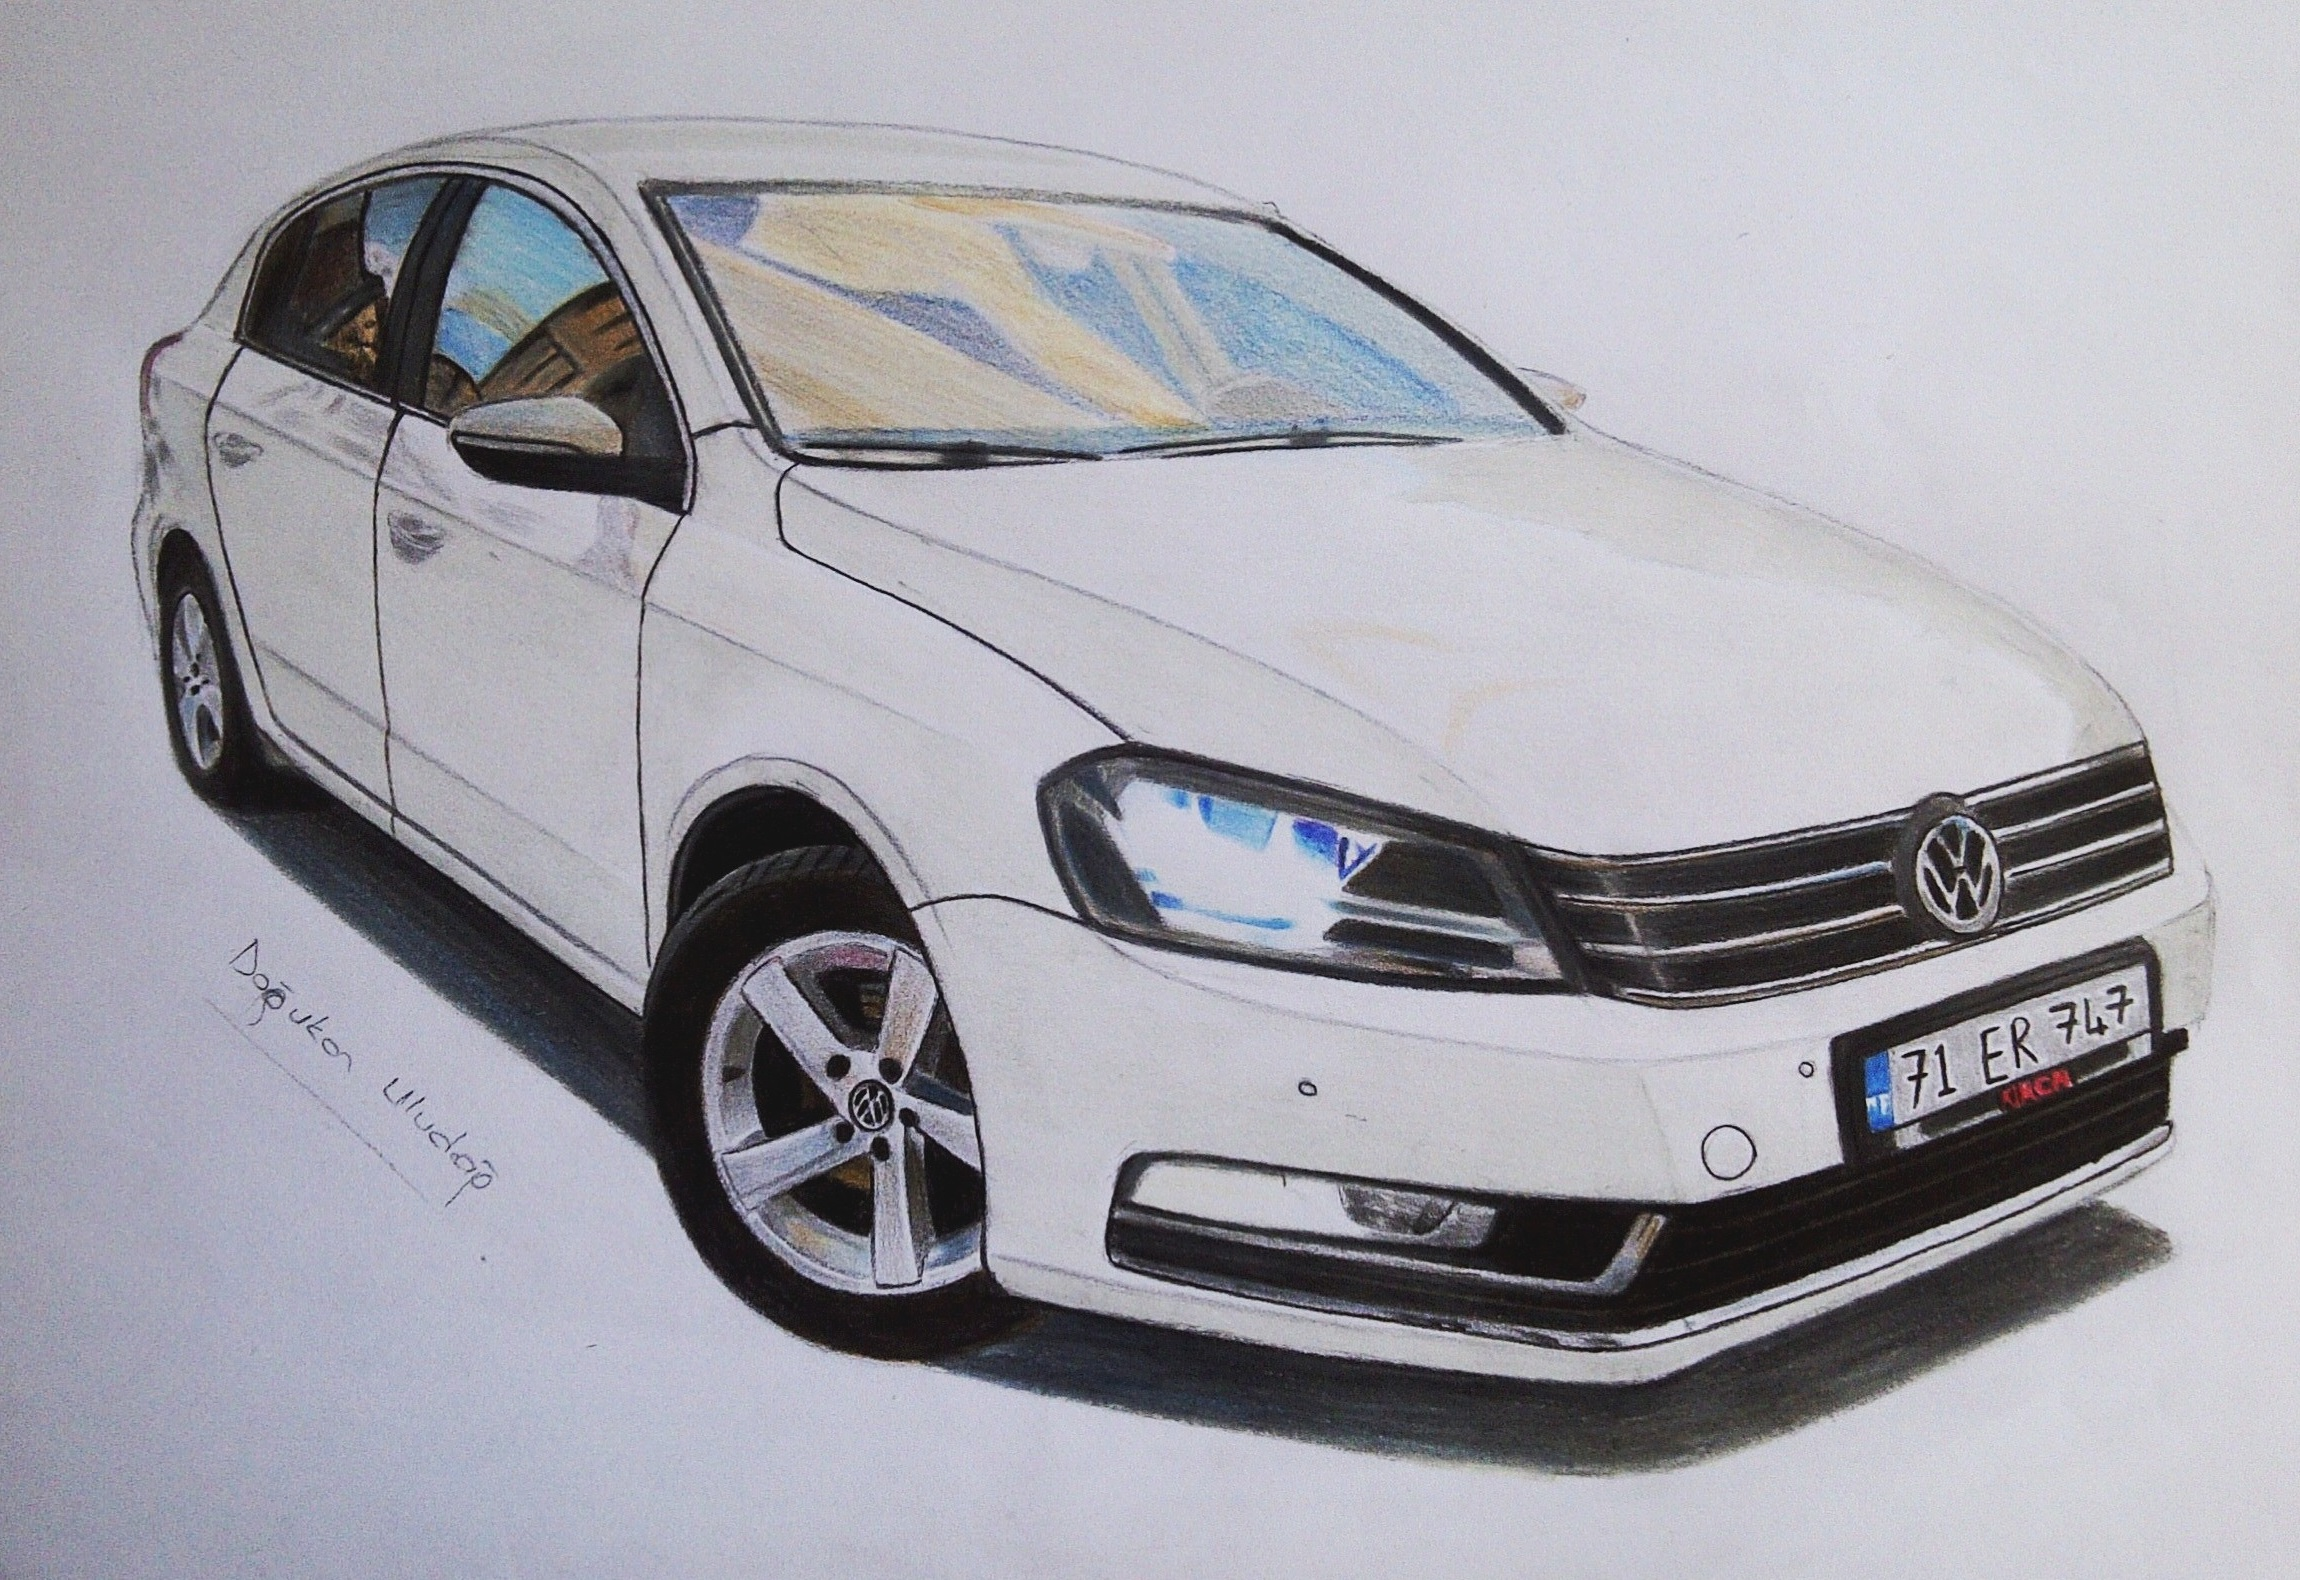 Ausmalbilder Autos Vw : Volkswagen Drawing At Getdrawings Com Free For Personal Use